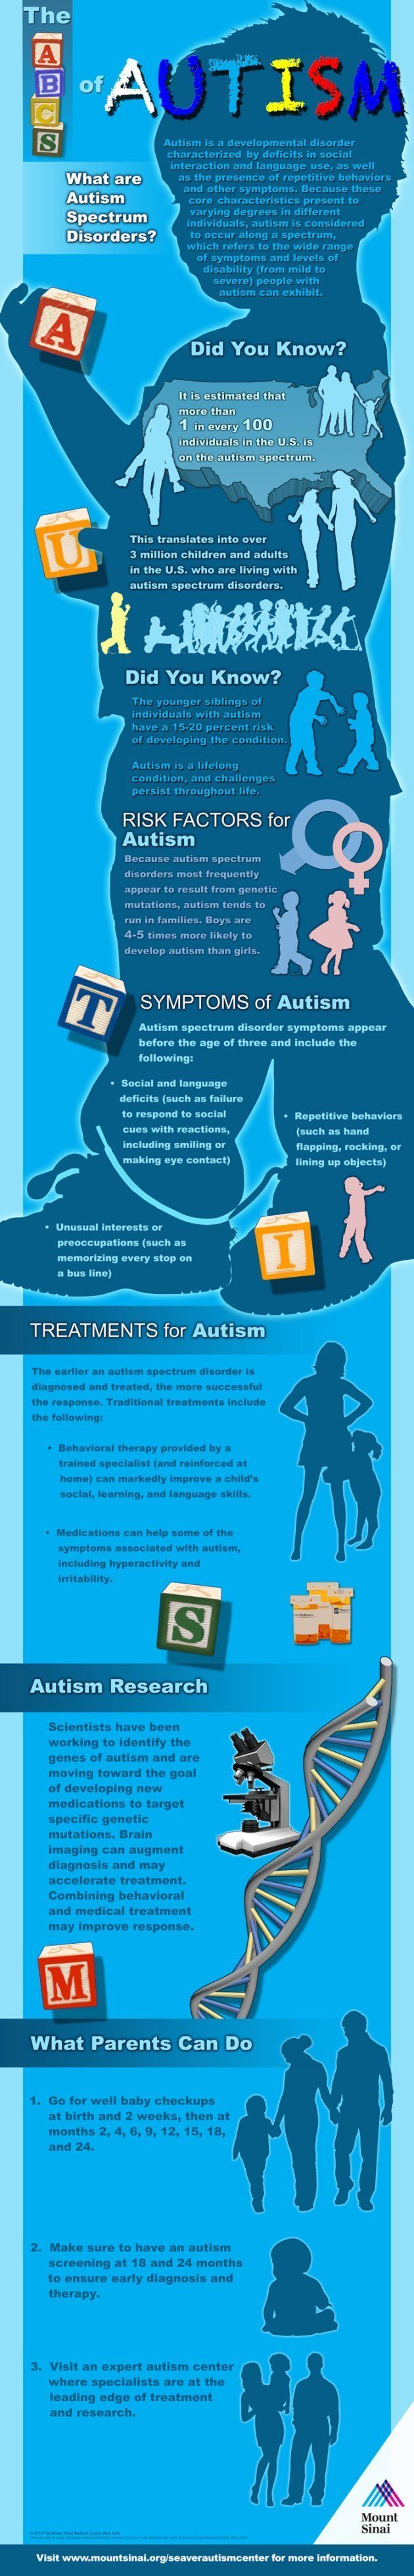 The ABCs of Autism Infographic